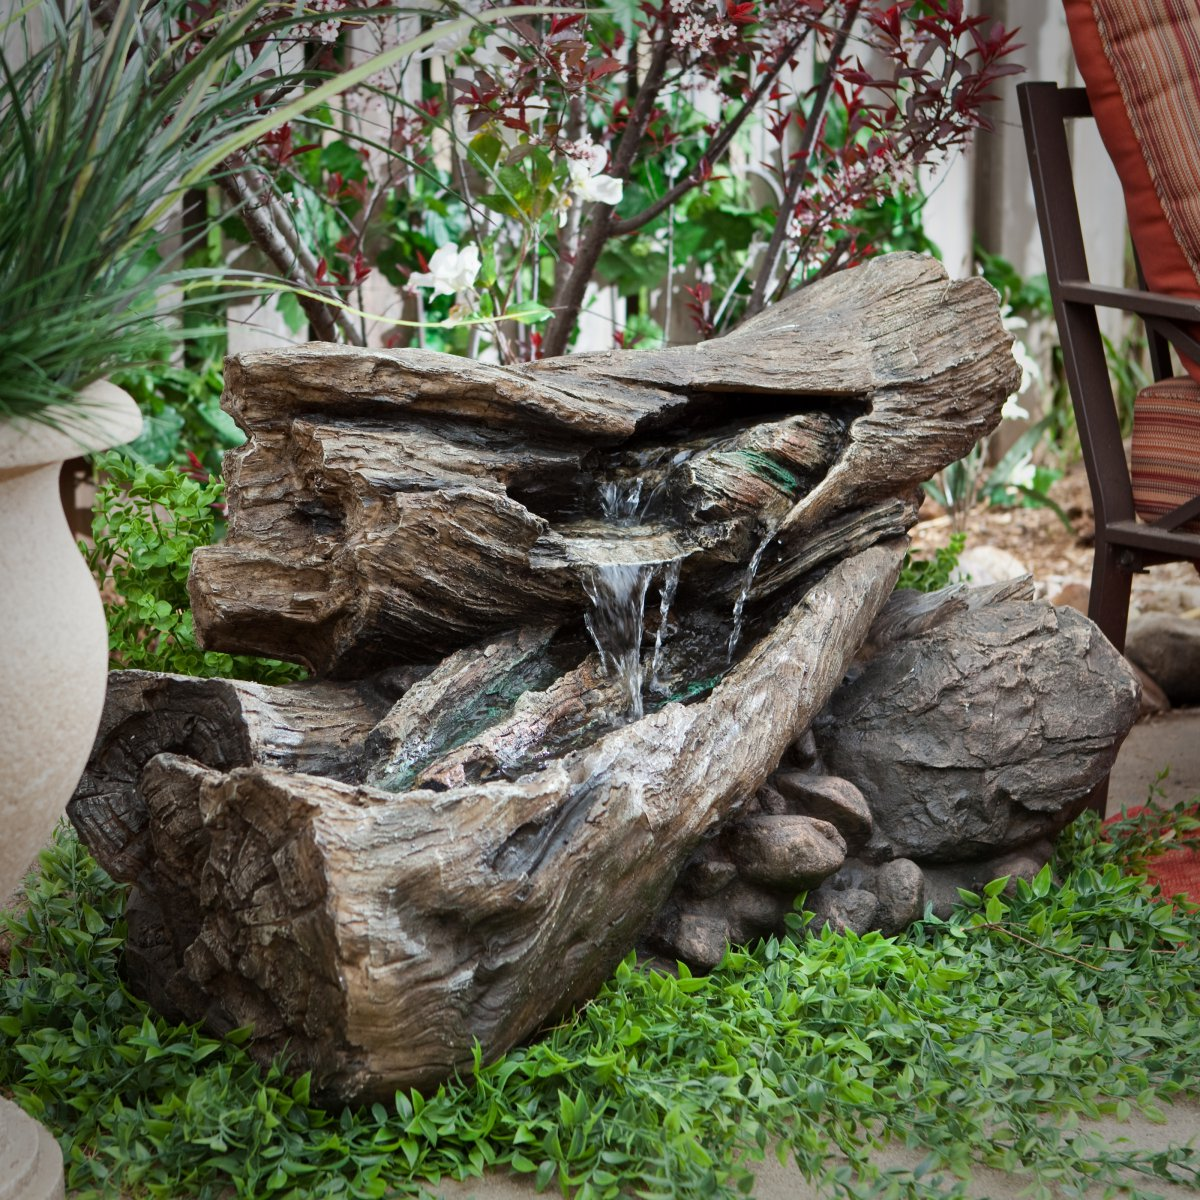 Wood waterfall design ideas, garden